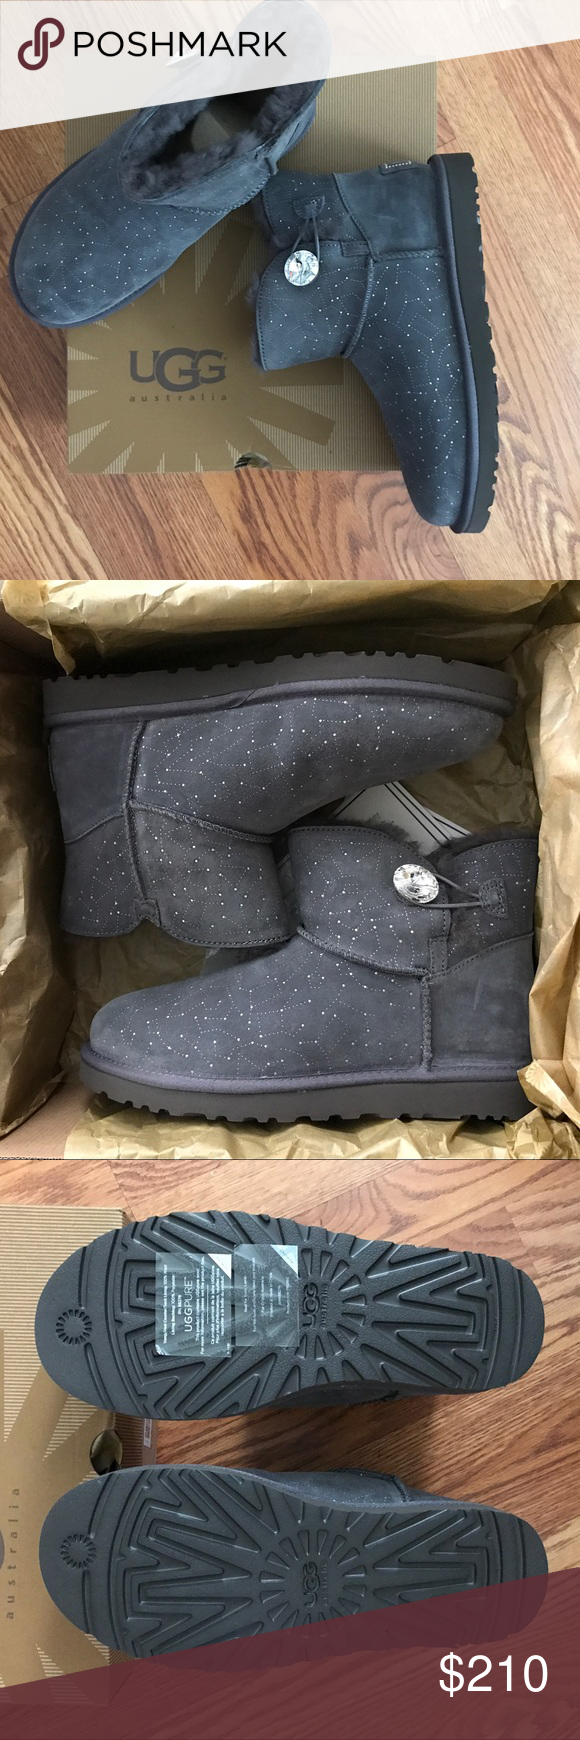 fa7c42b0bee Ugg Mini Bailey Bling Button Constellation Boots 9 Limited Edition ...